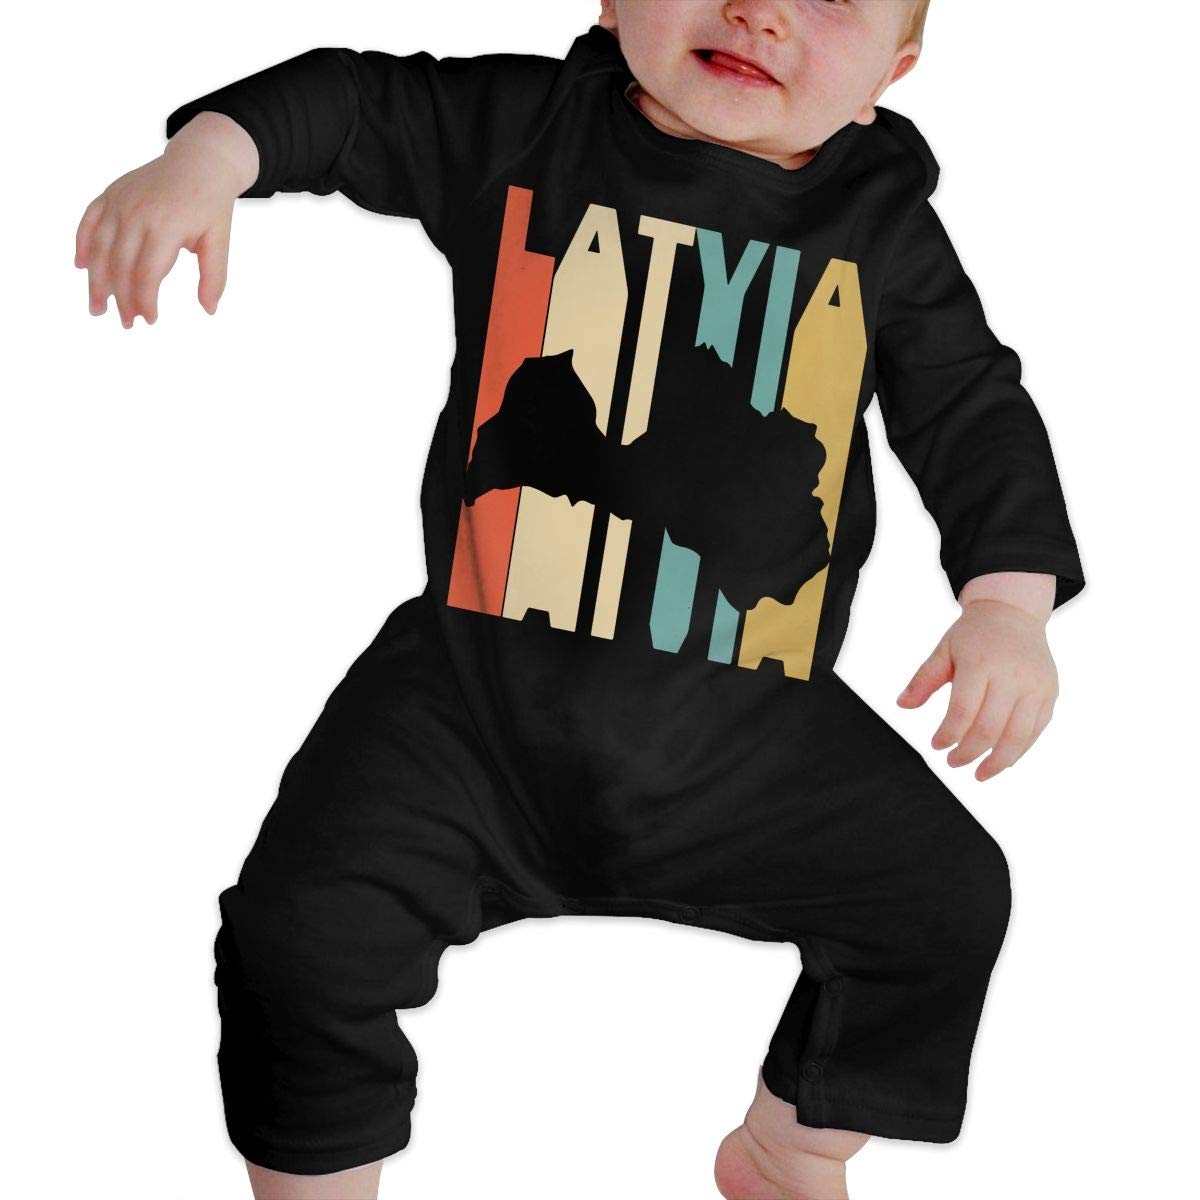 Long Sleeve Cotton Rompers for Unisex Baby Fashion Retro Style Latvia Silhouette Playsuit Black